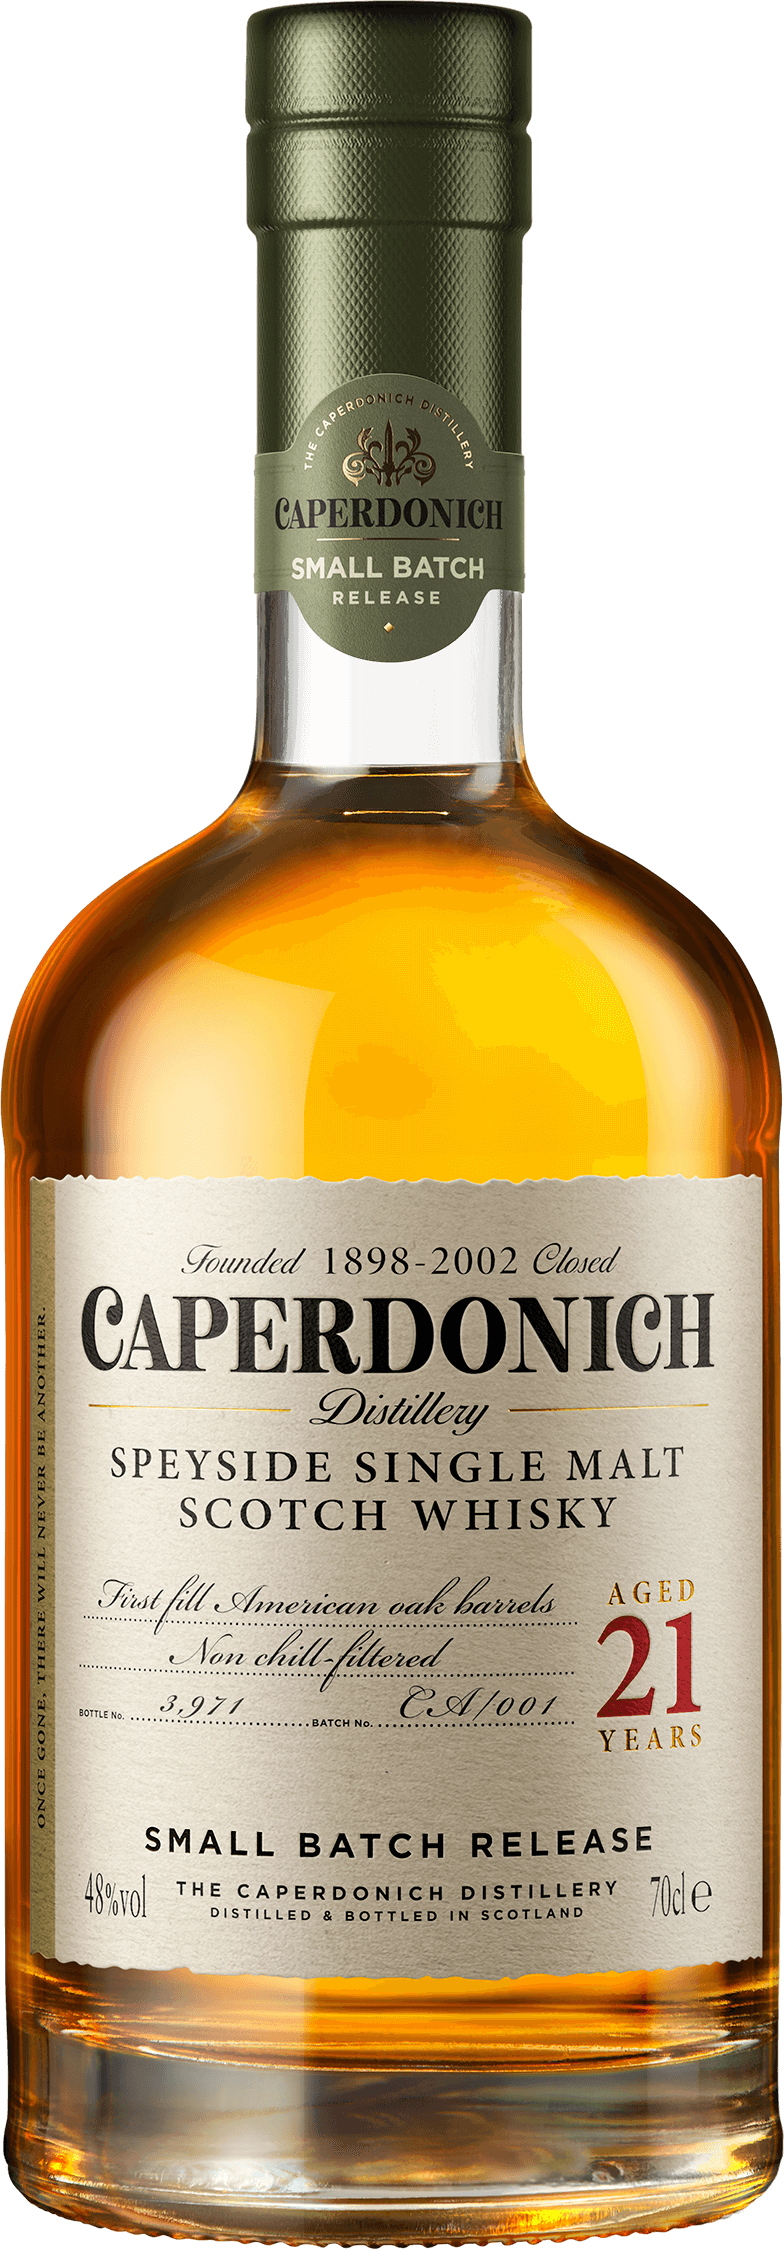 Bottle of caperdonich unpeated 21 years